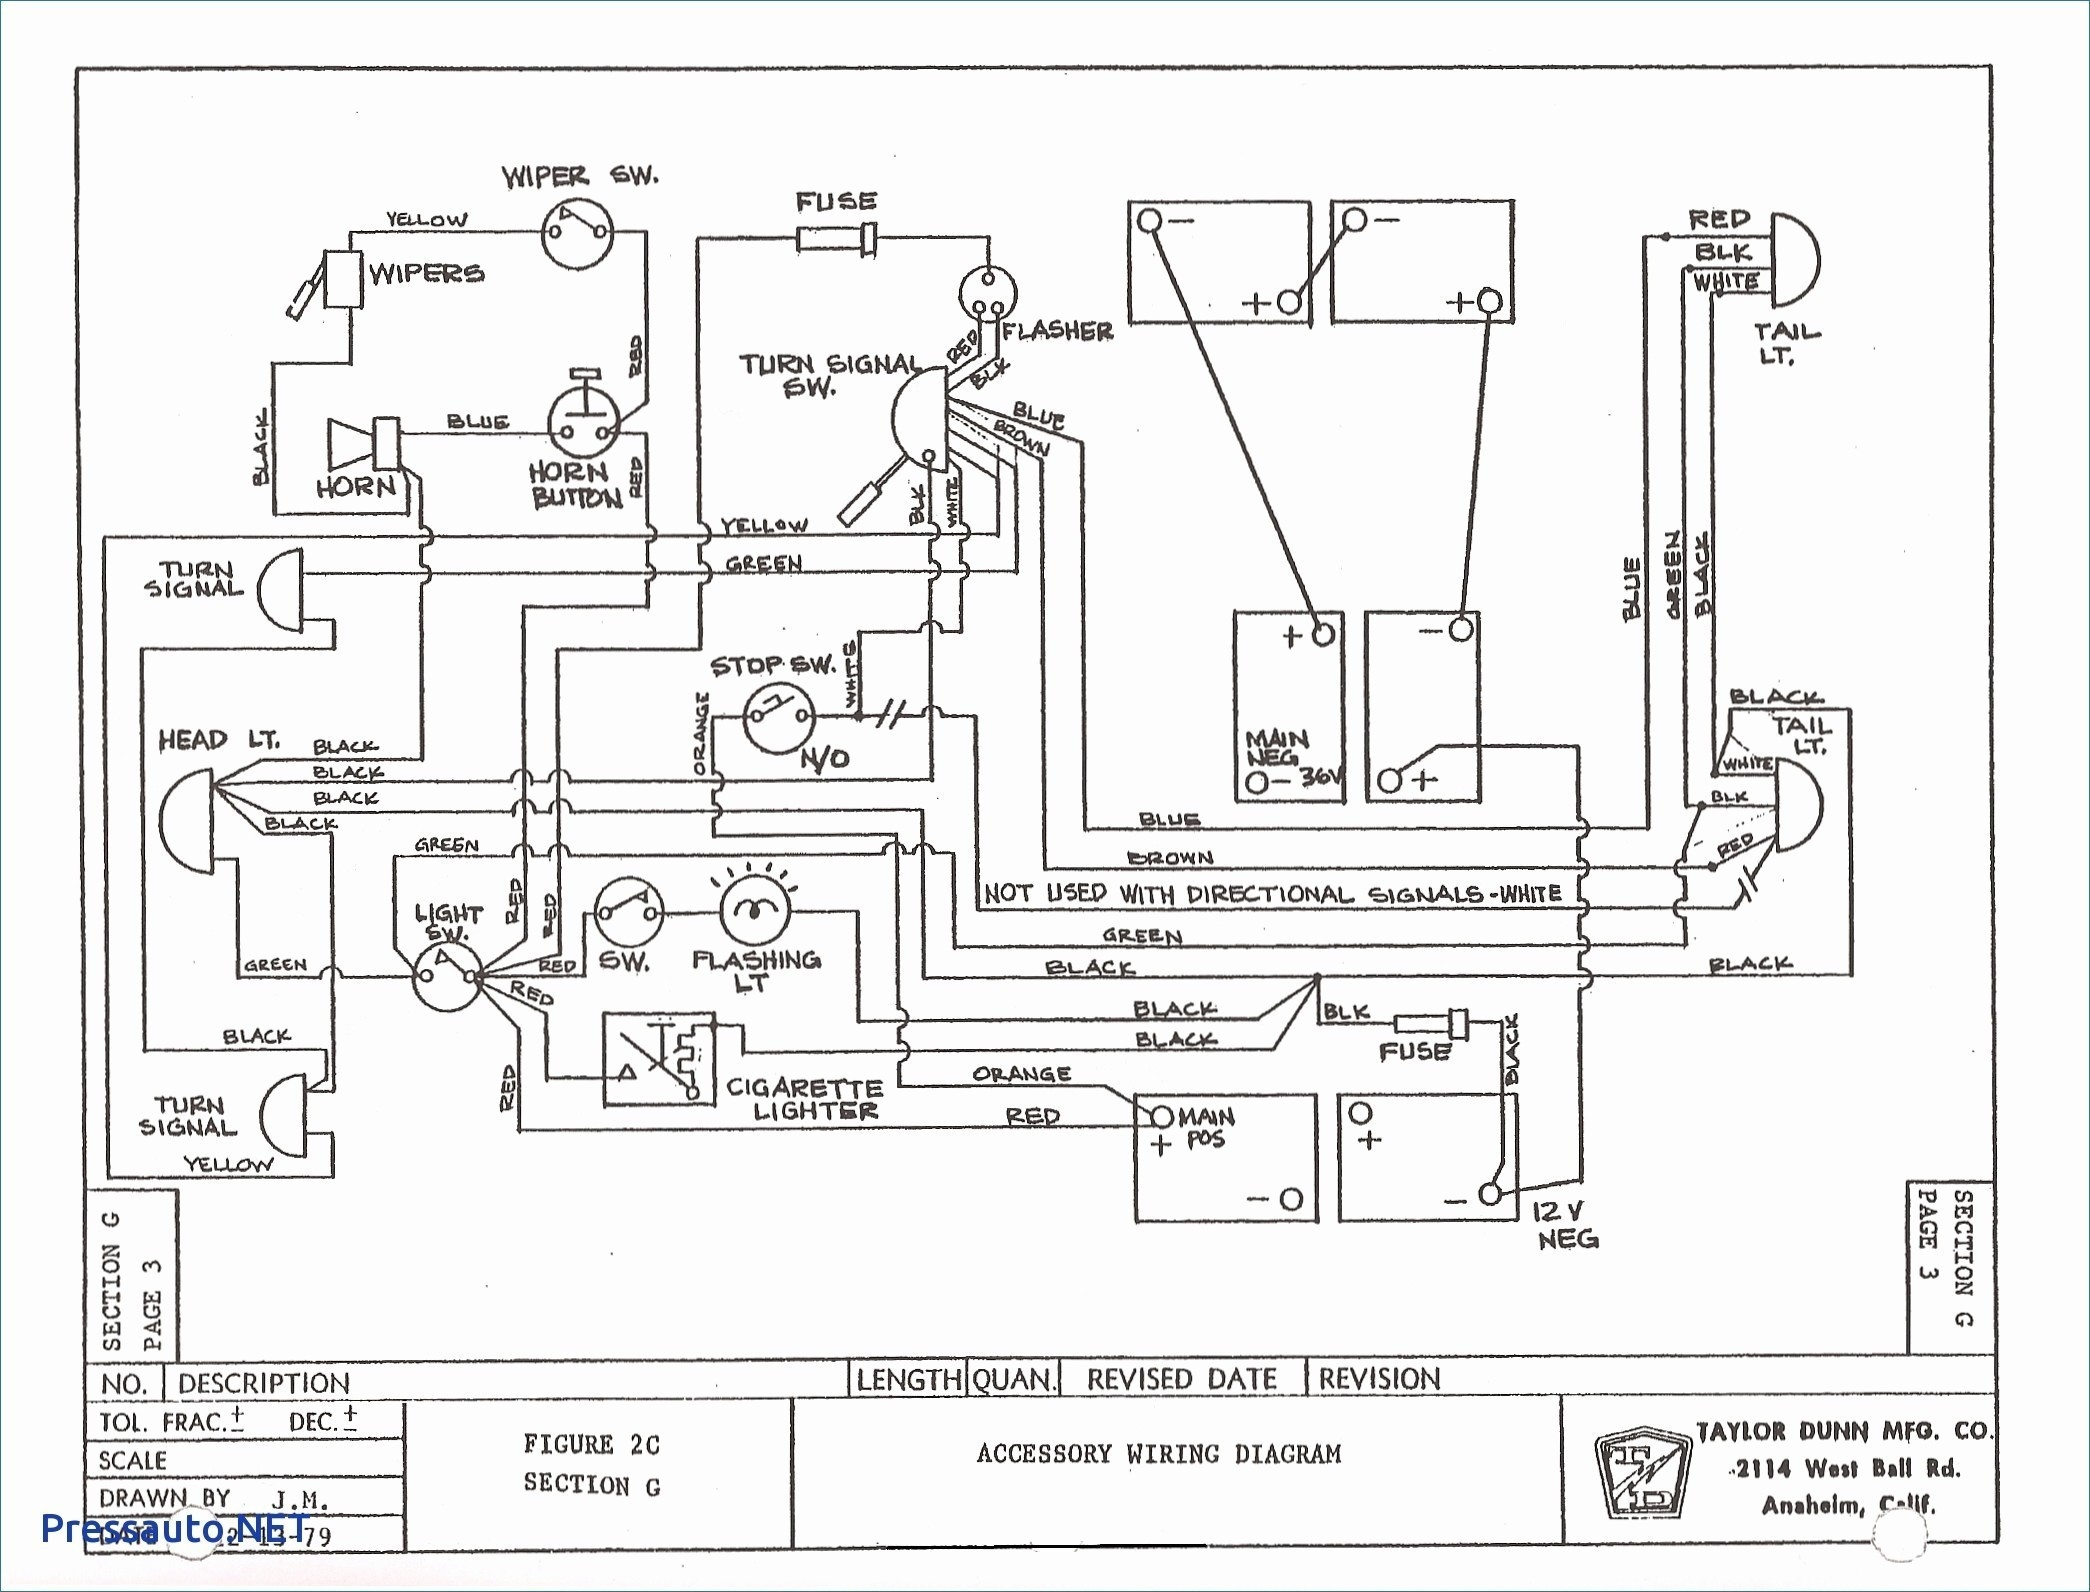 Western Electric Golf Cart Wiring Diagram Switch